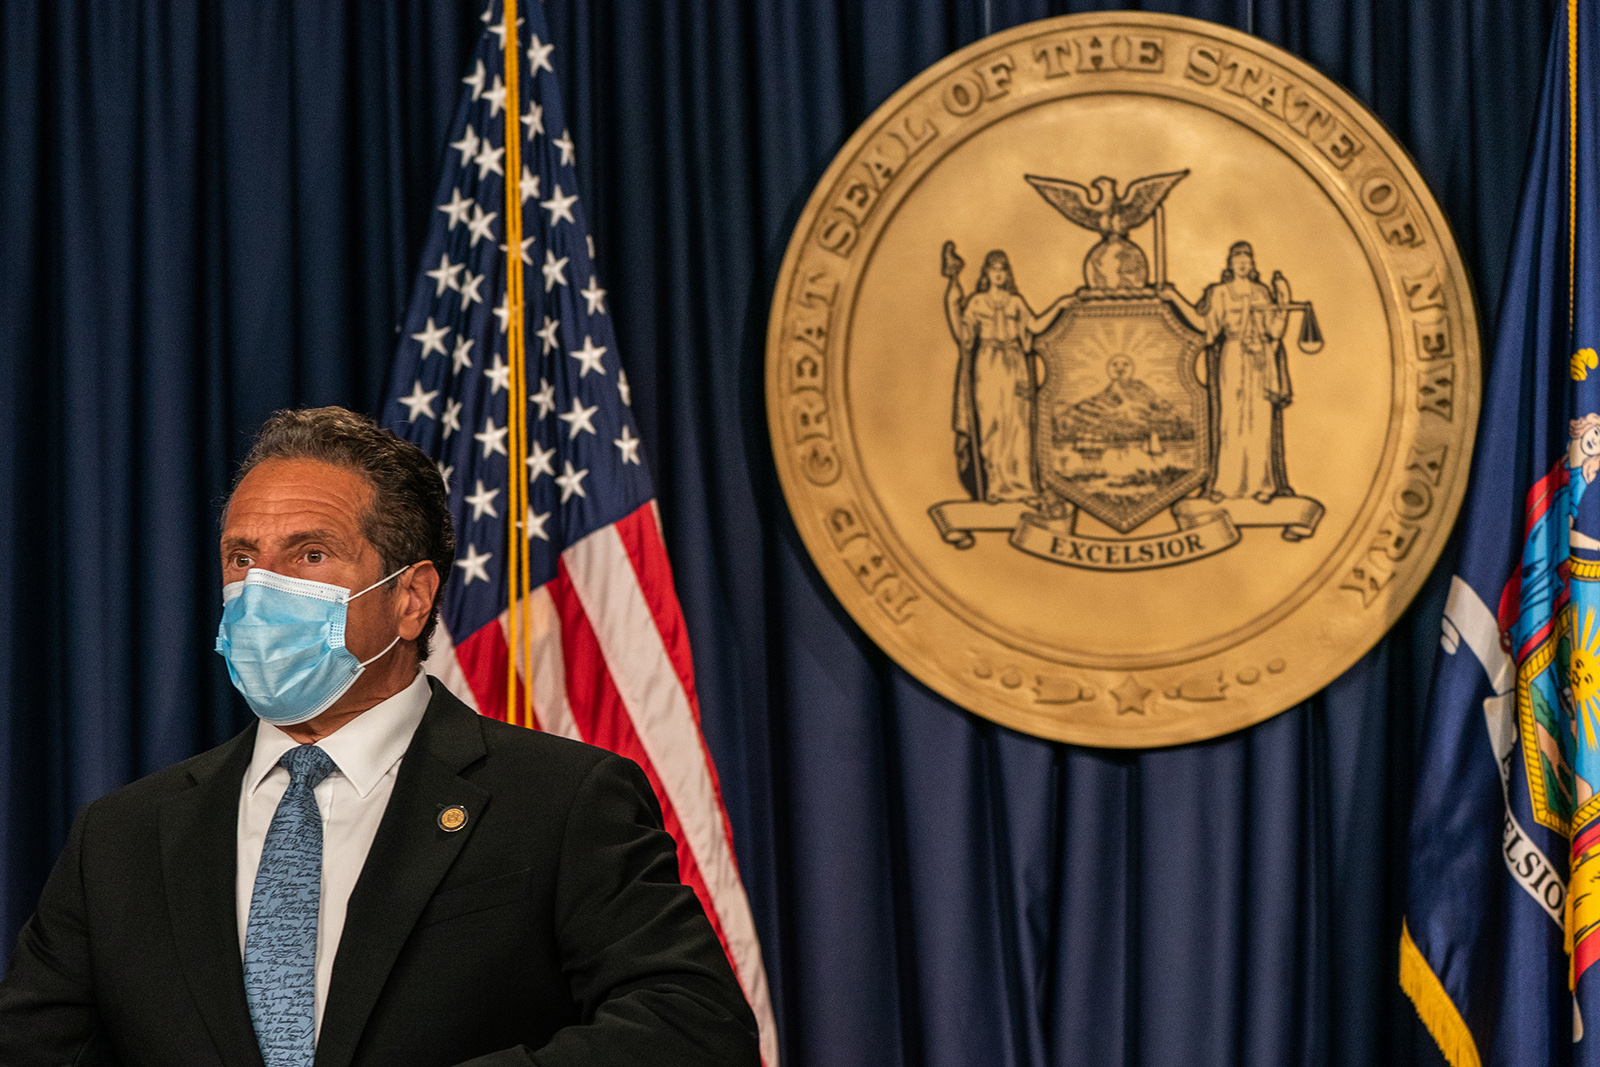 New York Gov. Andrew Cuomo wearing a protective mask attends during the daily media briefing at the Office of the Governor of the State of New York on July 23 in New York.